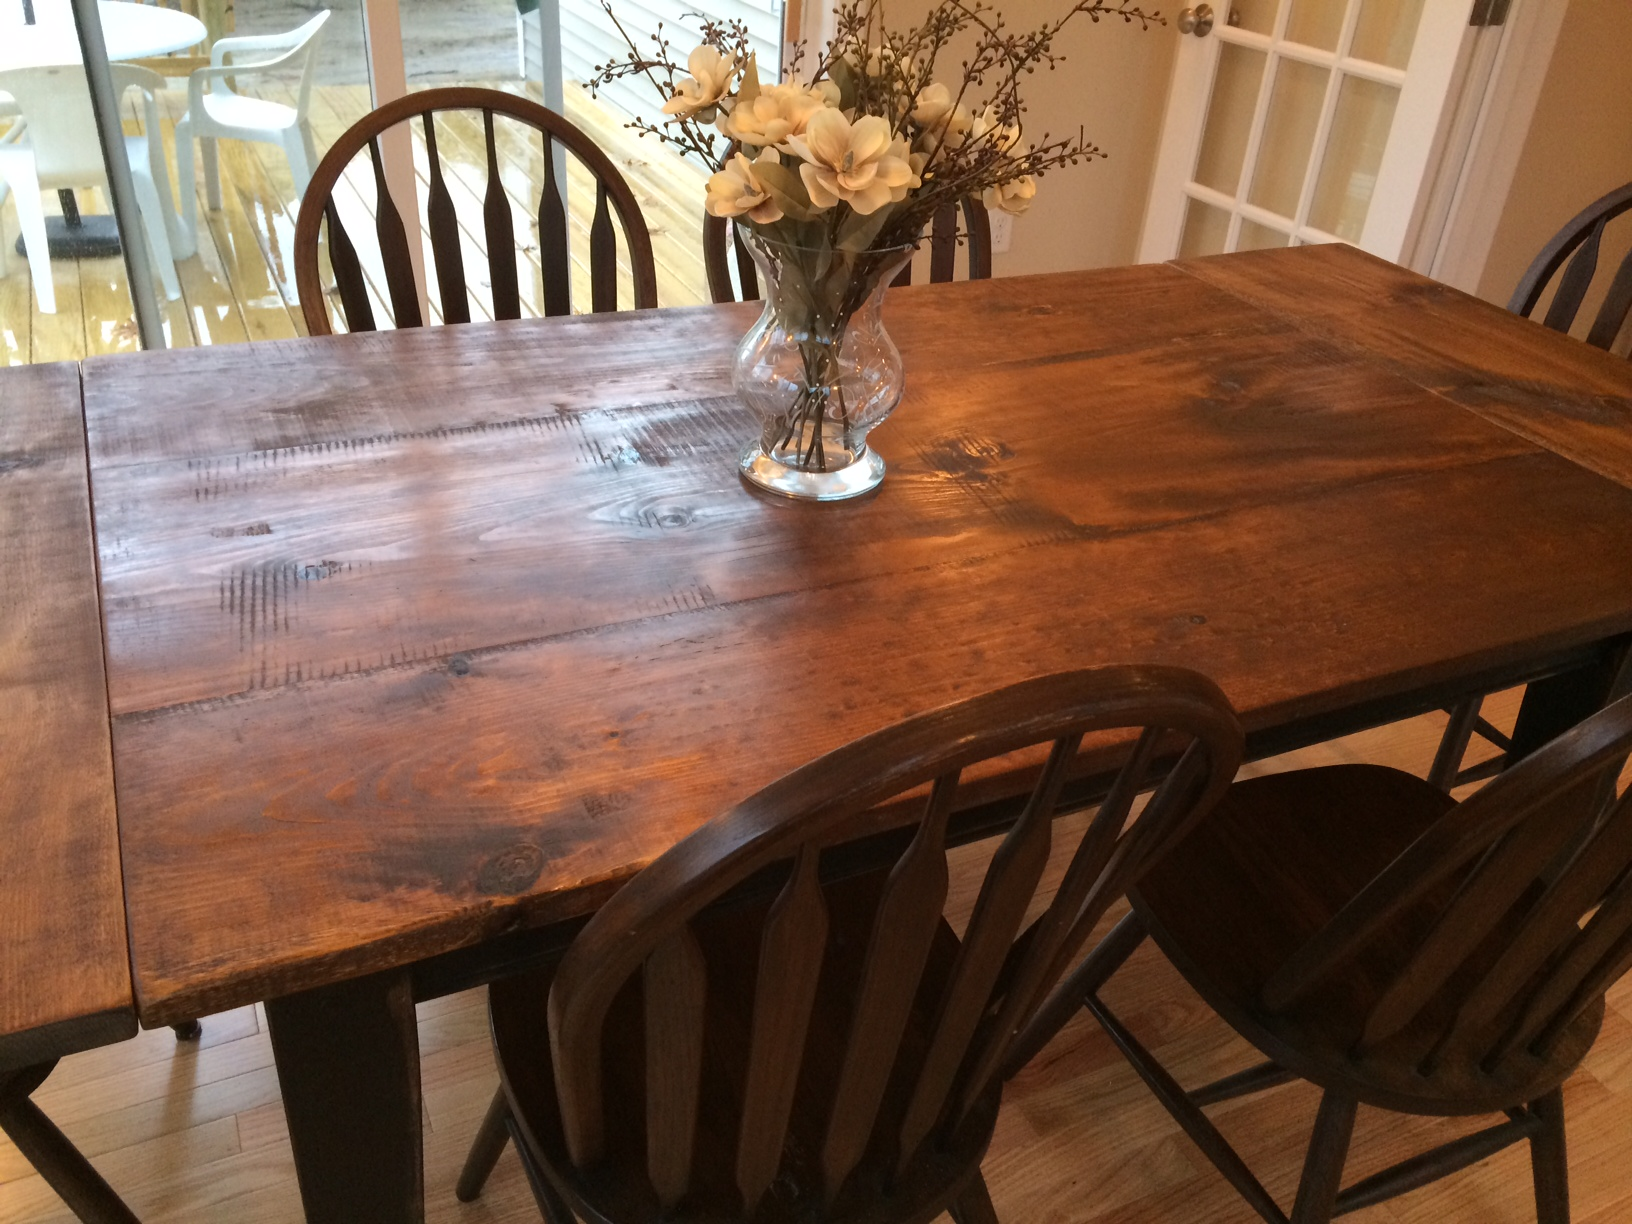 newenglandfarmtable wordpress custom kitchen tables Waaaay Up North